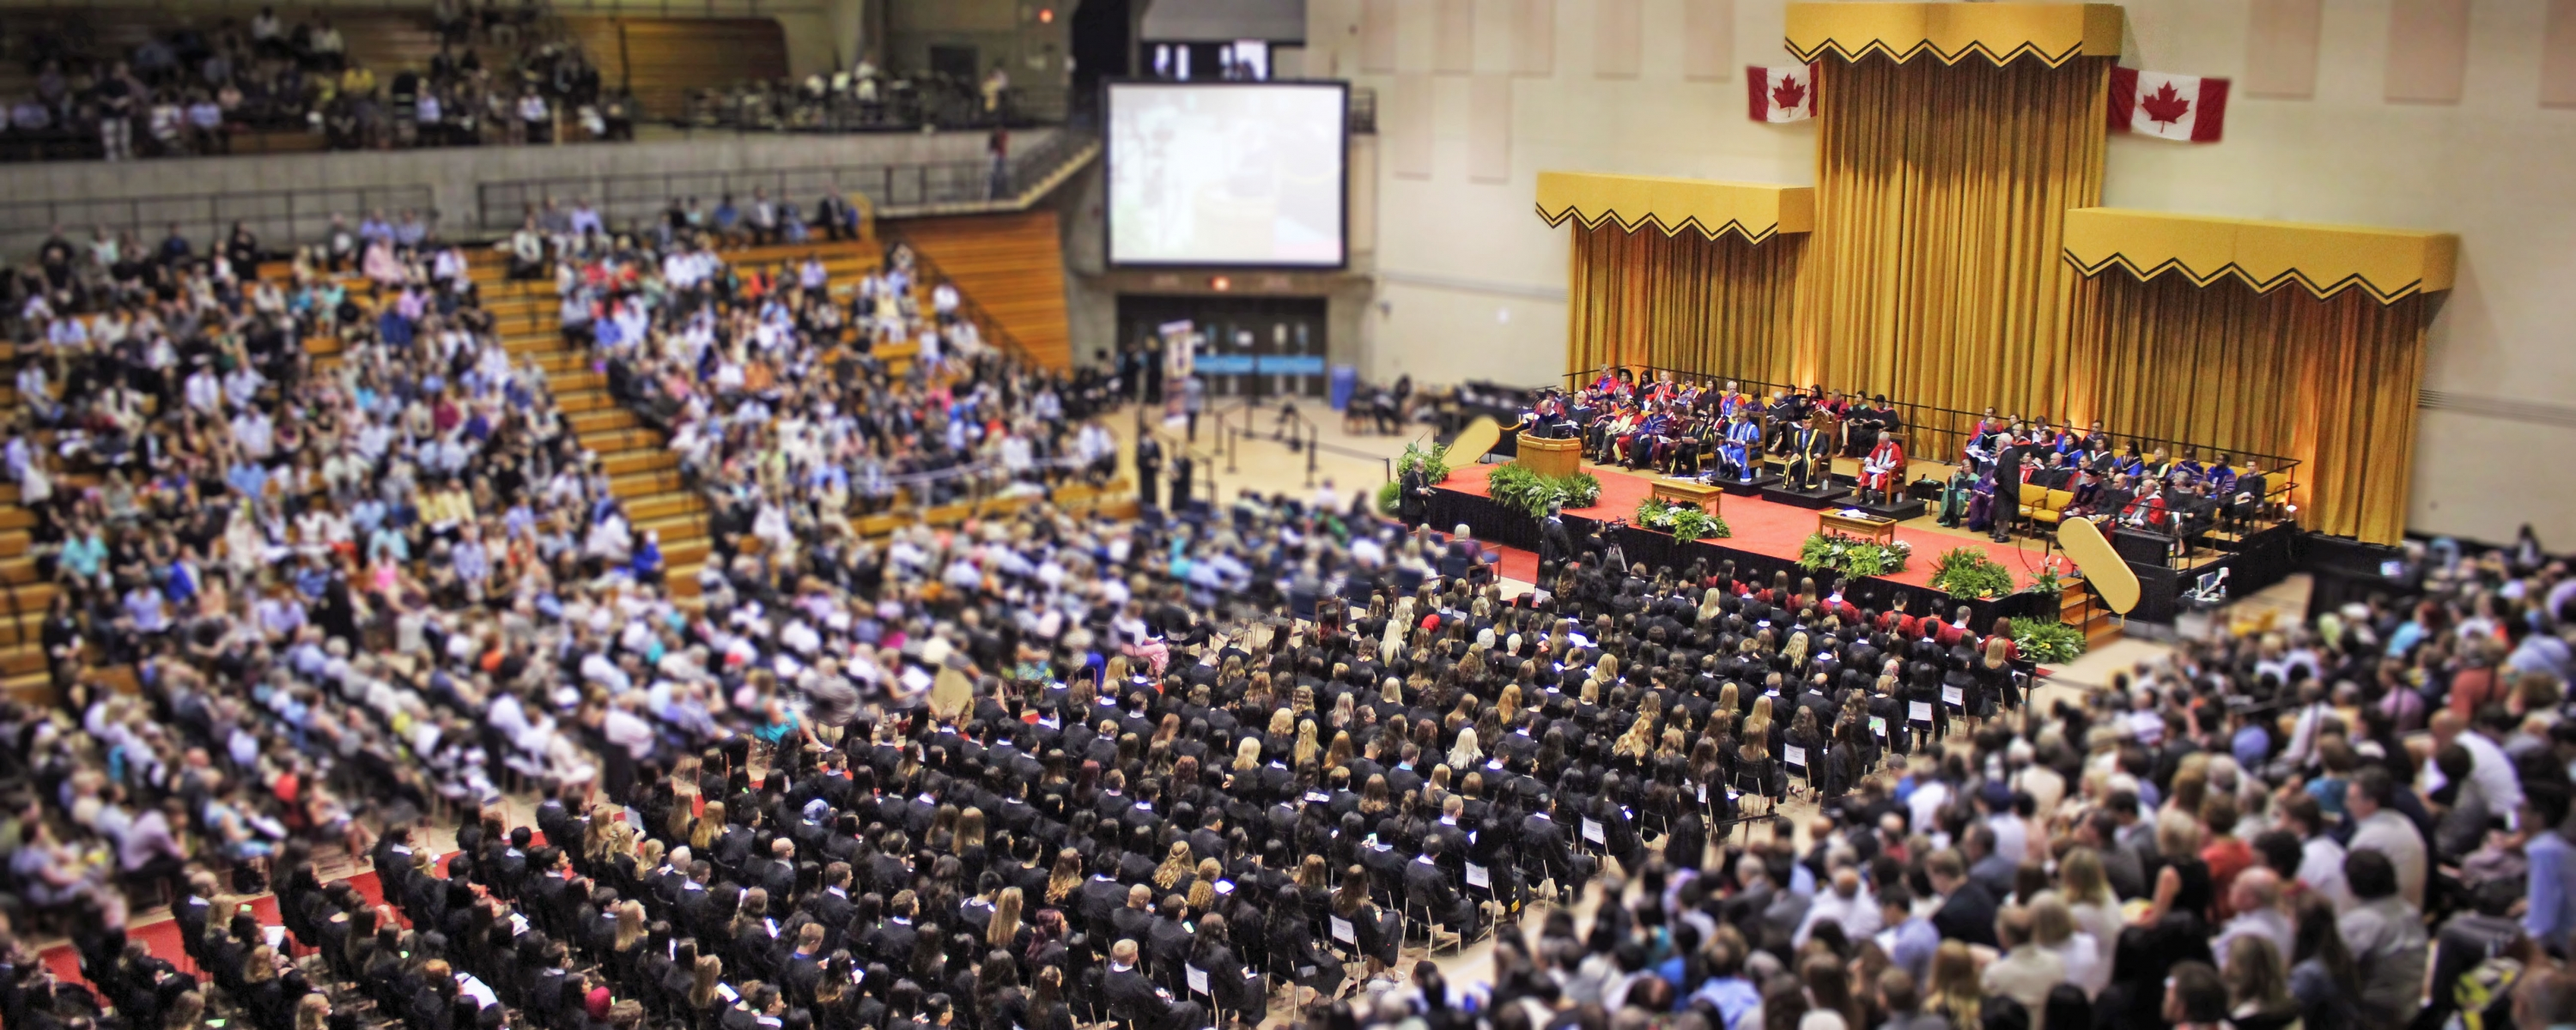 convocation auditorium